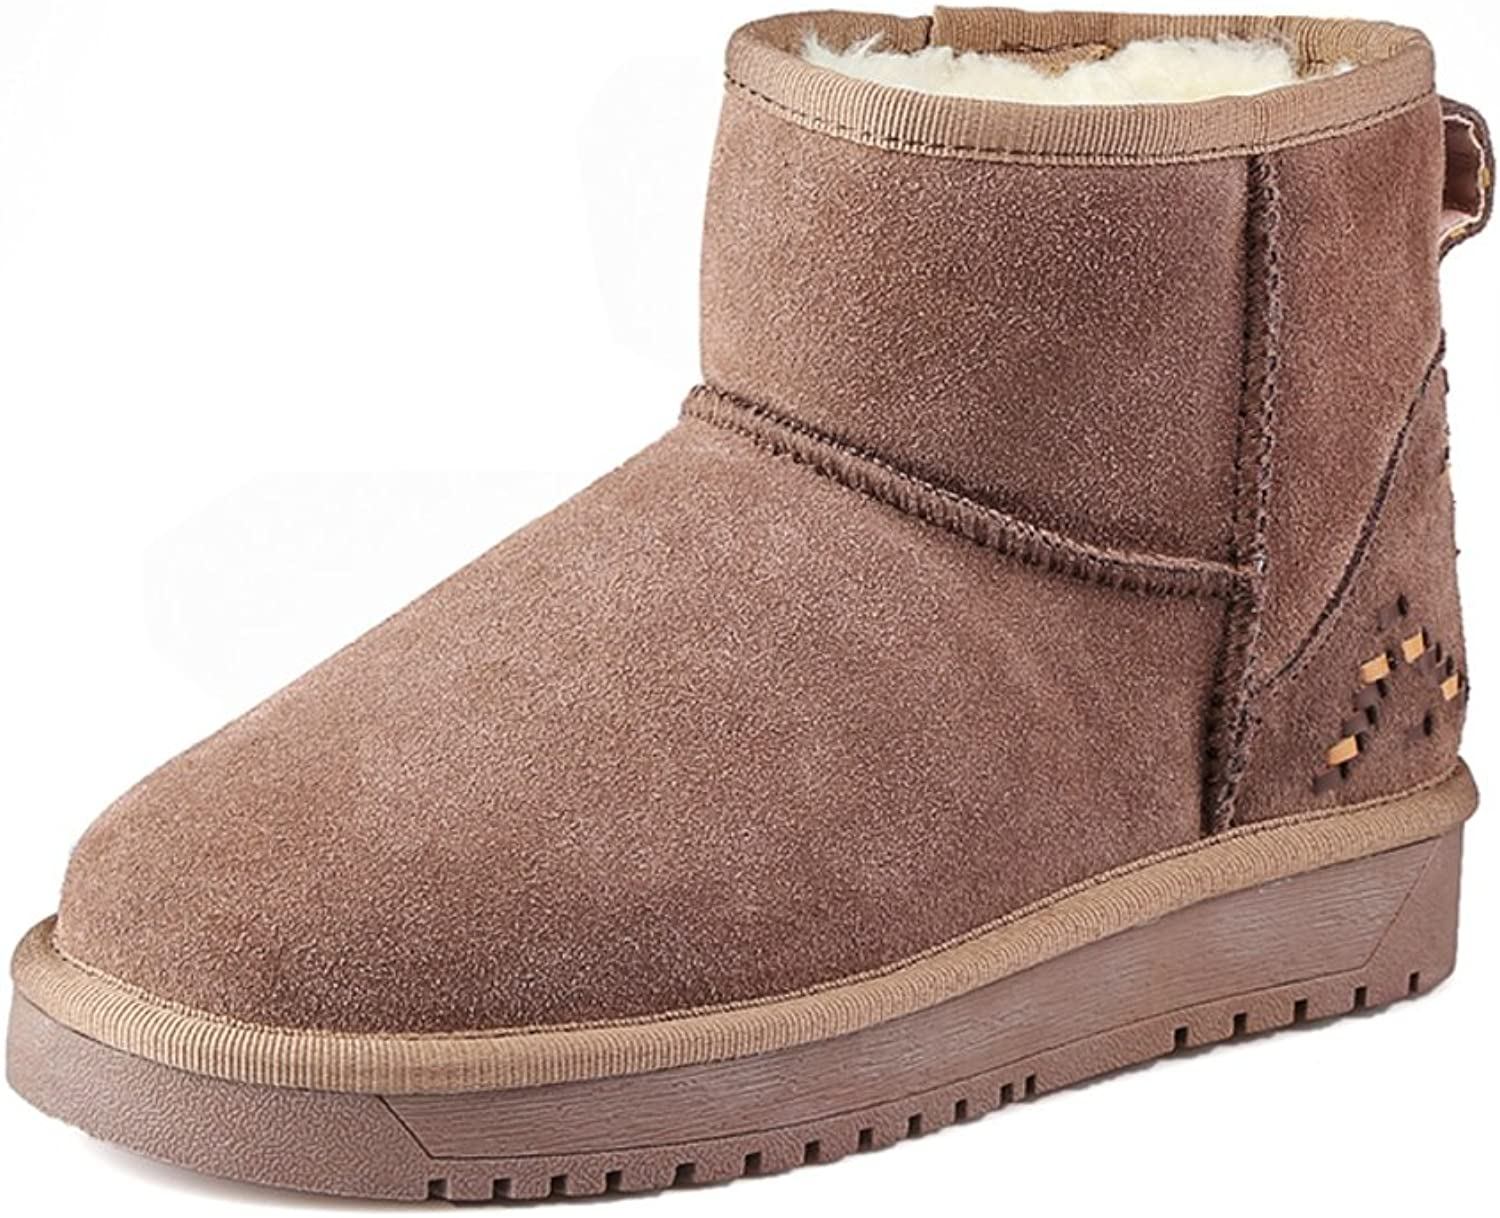 Huhuj It Falls and Winter Full Leather Flat Boots Warm Cashmere Round Leather Snow Boots Slip